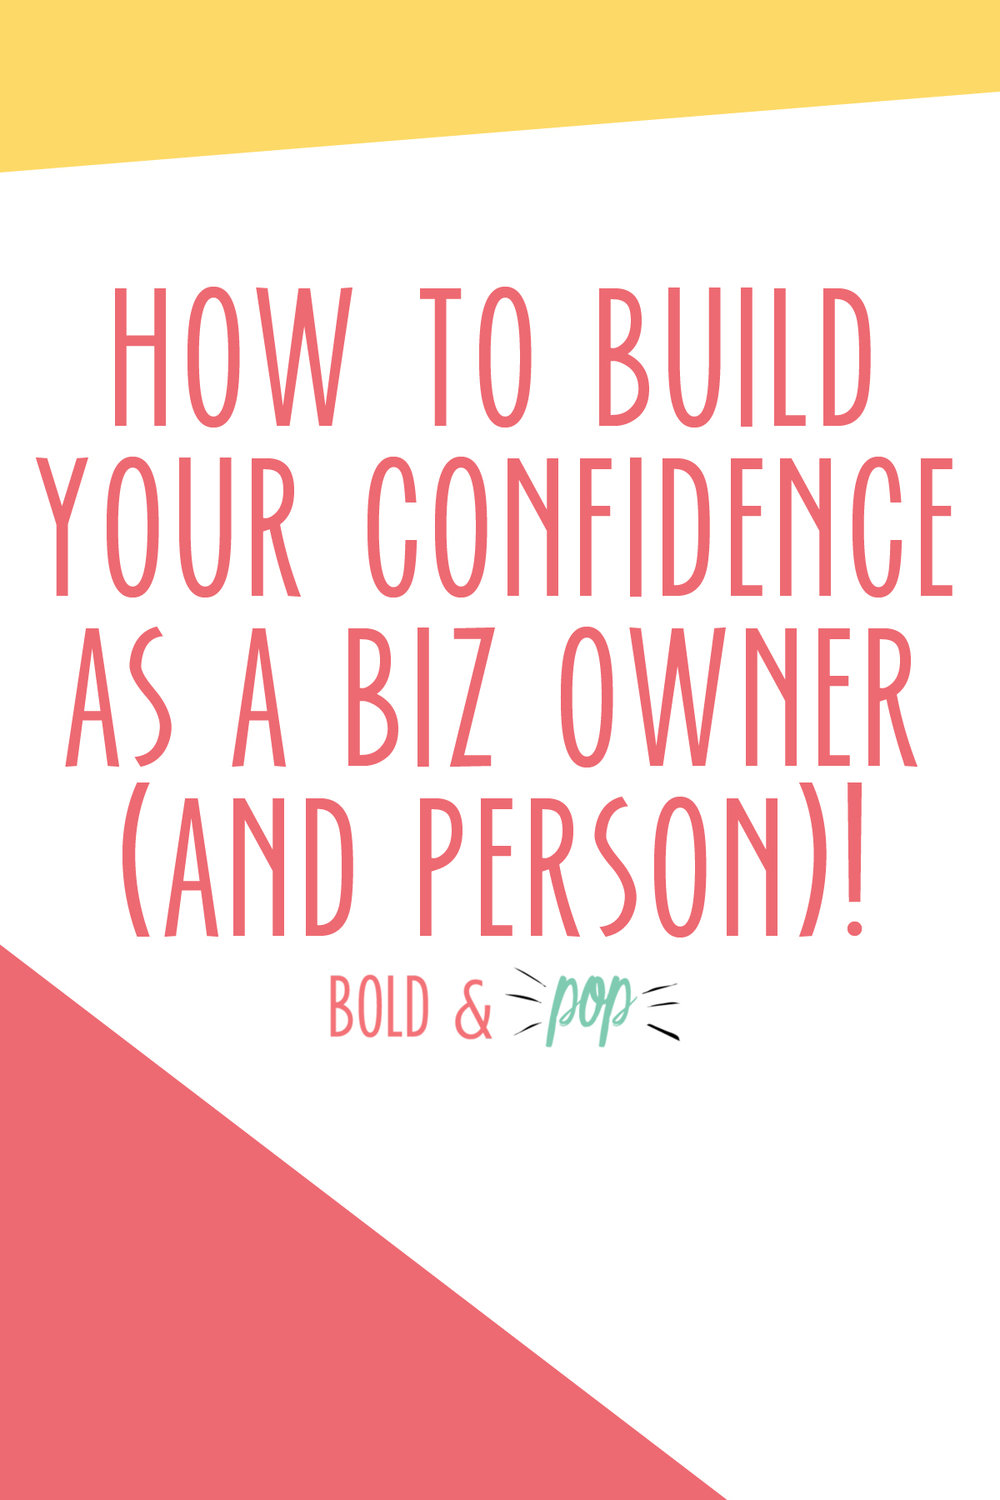 Bold & Pop : How to Build Your Confidence as a Biz Owner (and Person)!